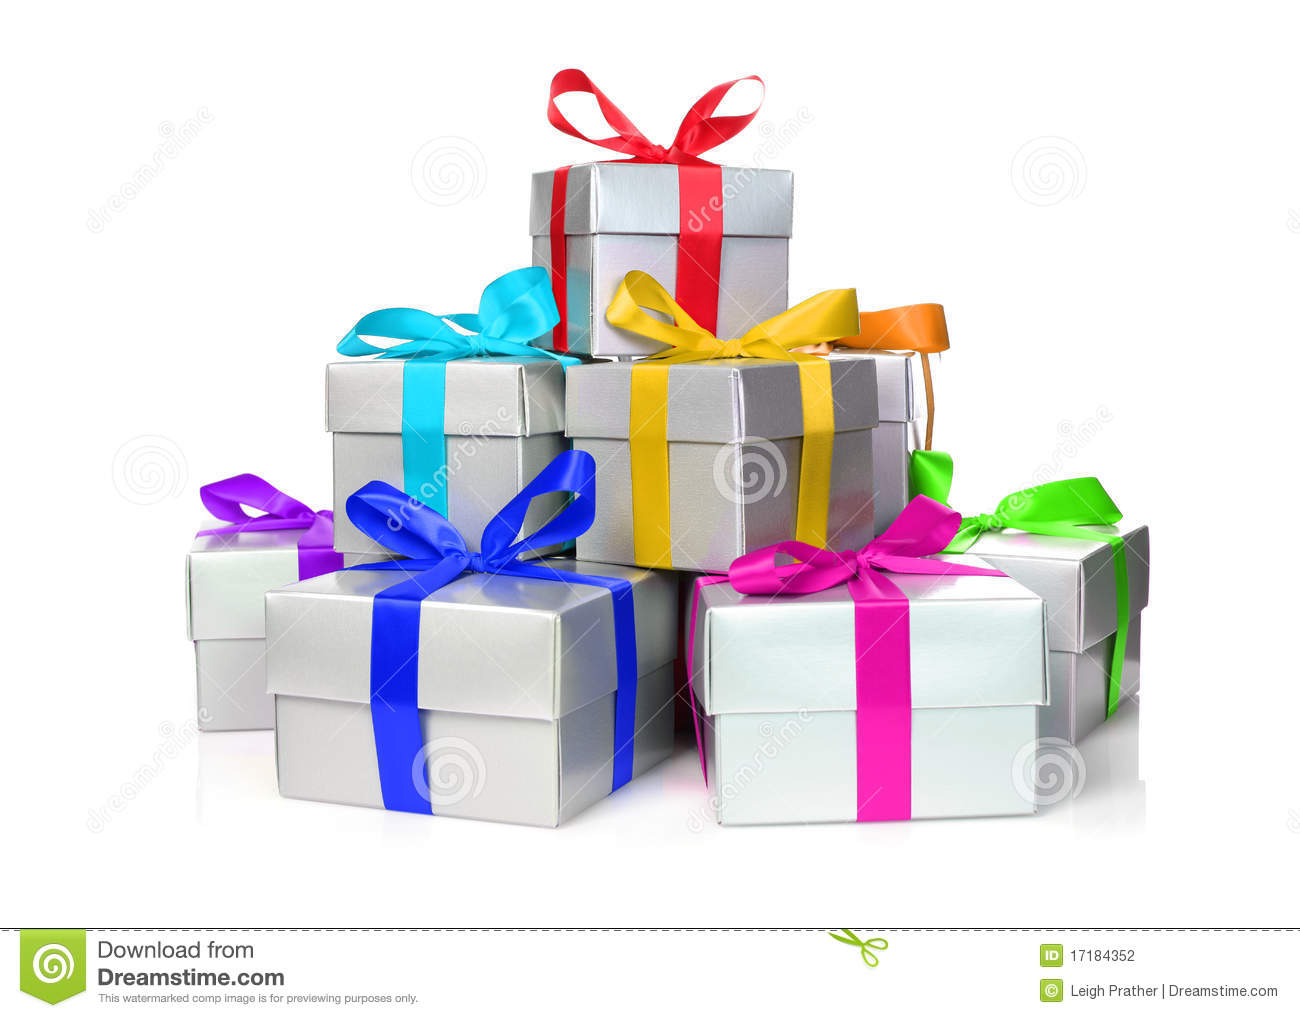 Stack Of Presents Stock Photography Image 17184352 : stack presents 17184352 from www.dreamstime.com size 1300 x 1018 jpeg 92kB